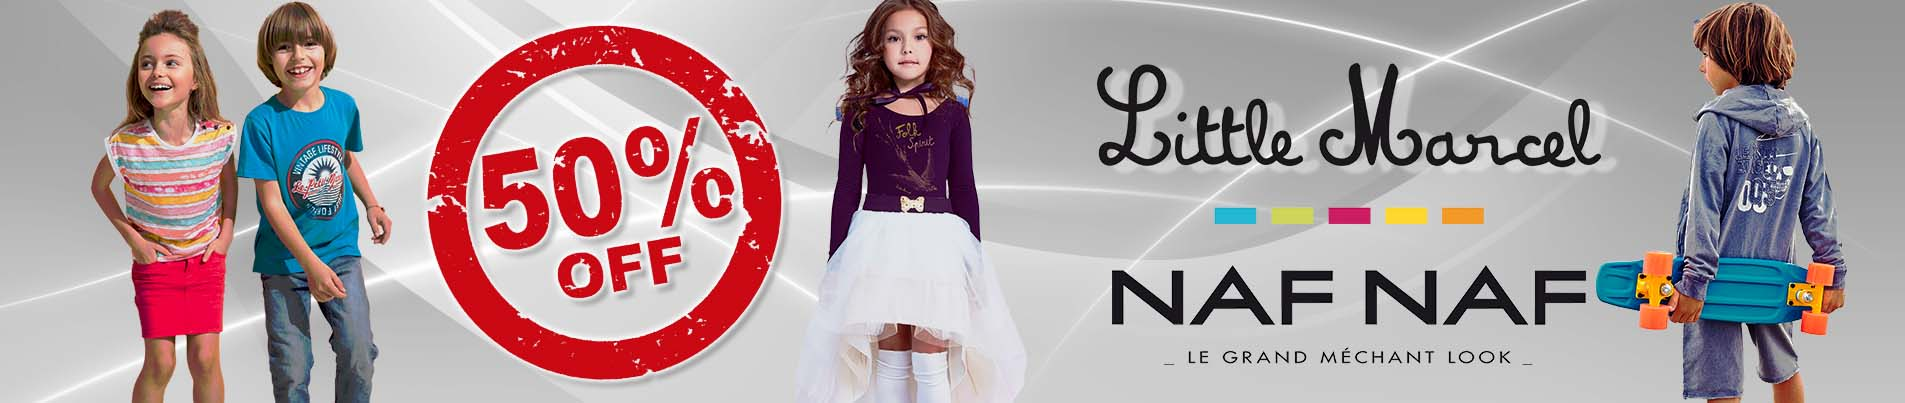 Brand Clothes for kids Wholesale